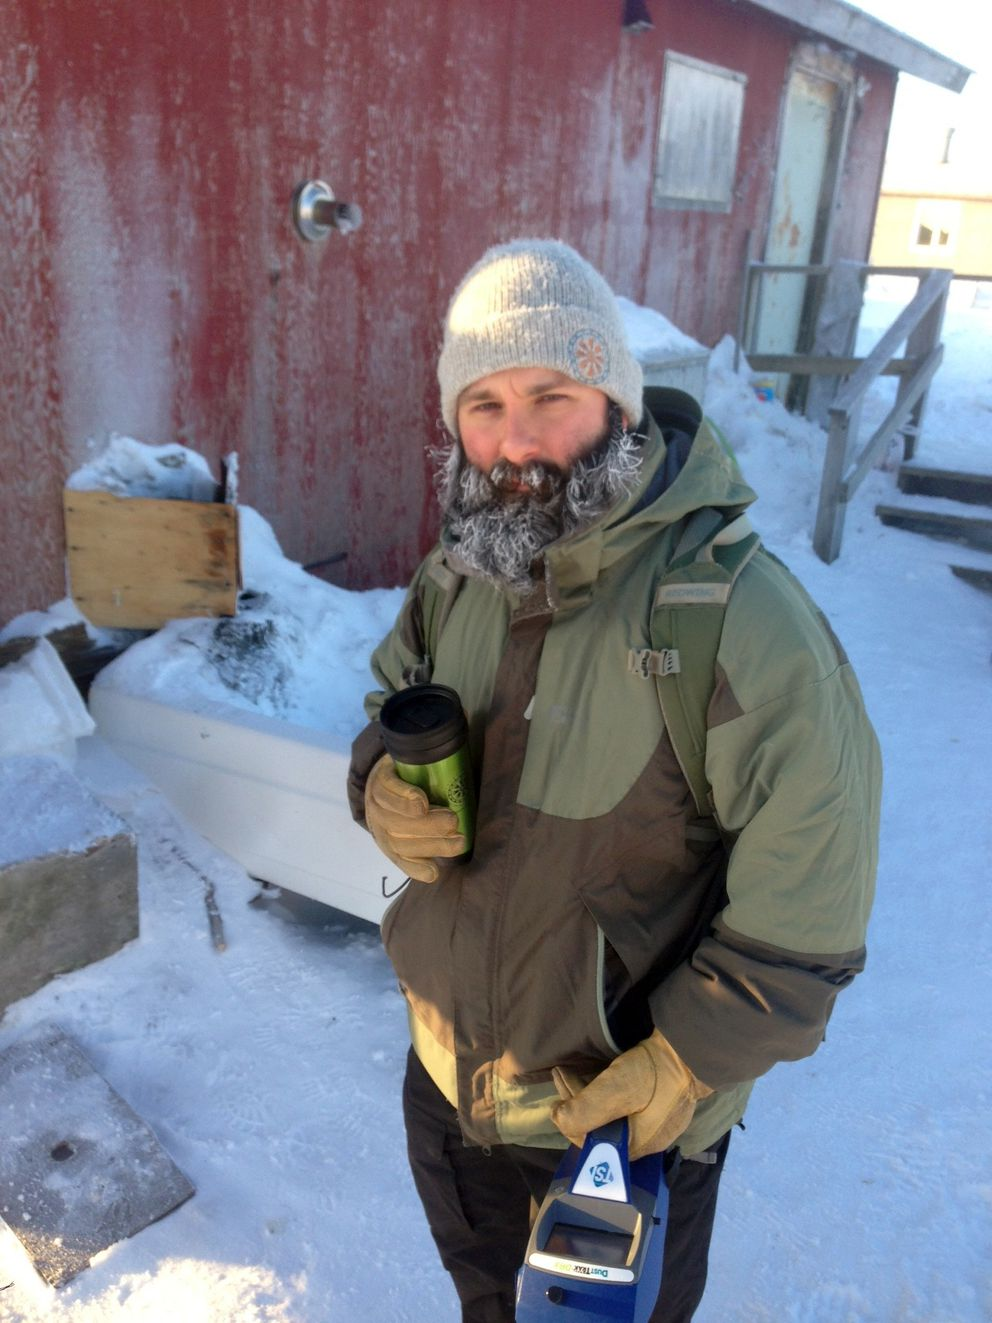 Salkoski holds an air monitor outside a home in Southwest Alaska during the winter of 2013. (Courtesy A.J. Salkoski / ANTHC)